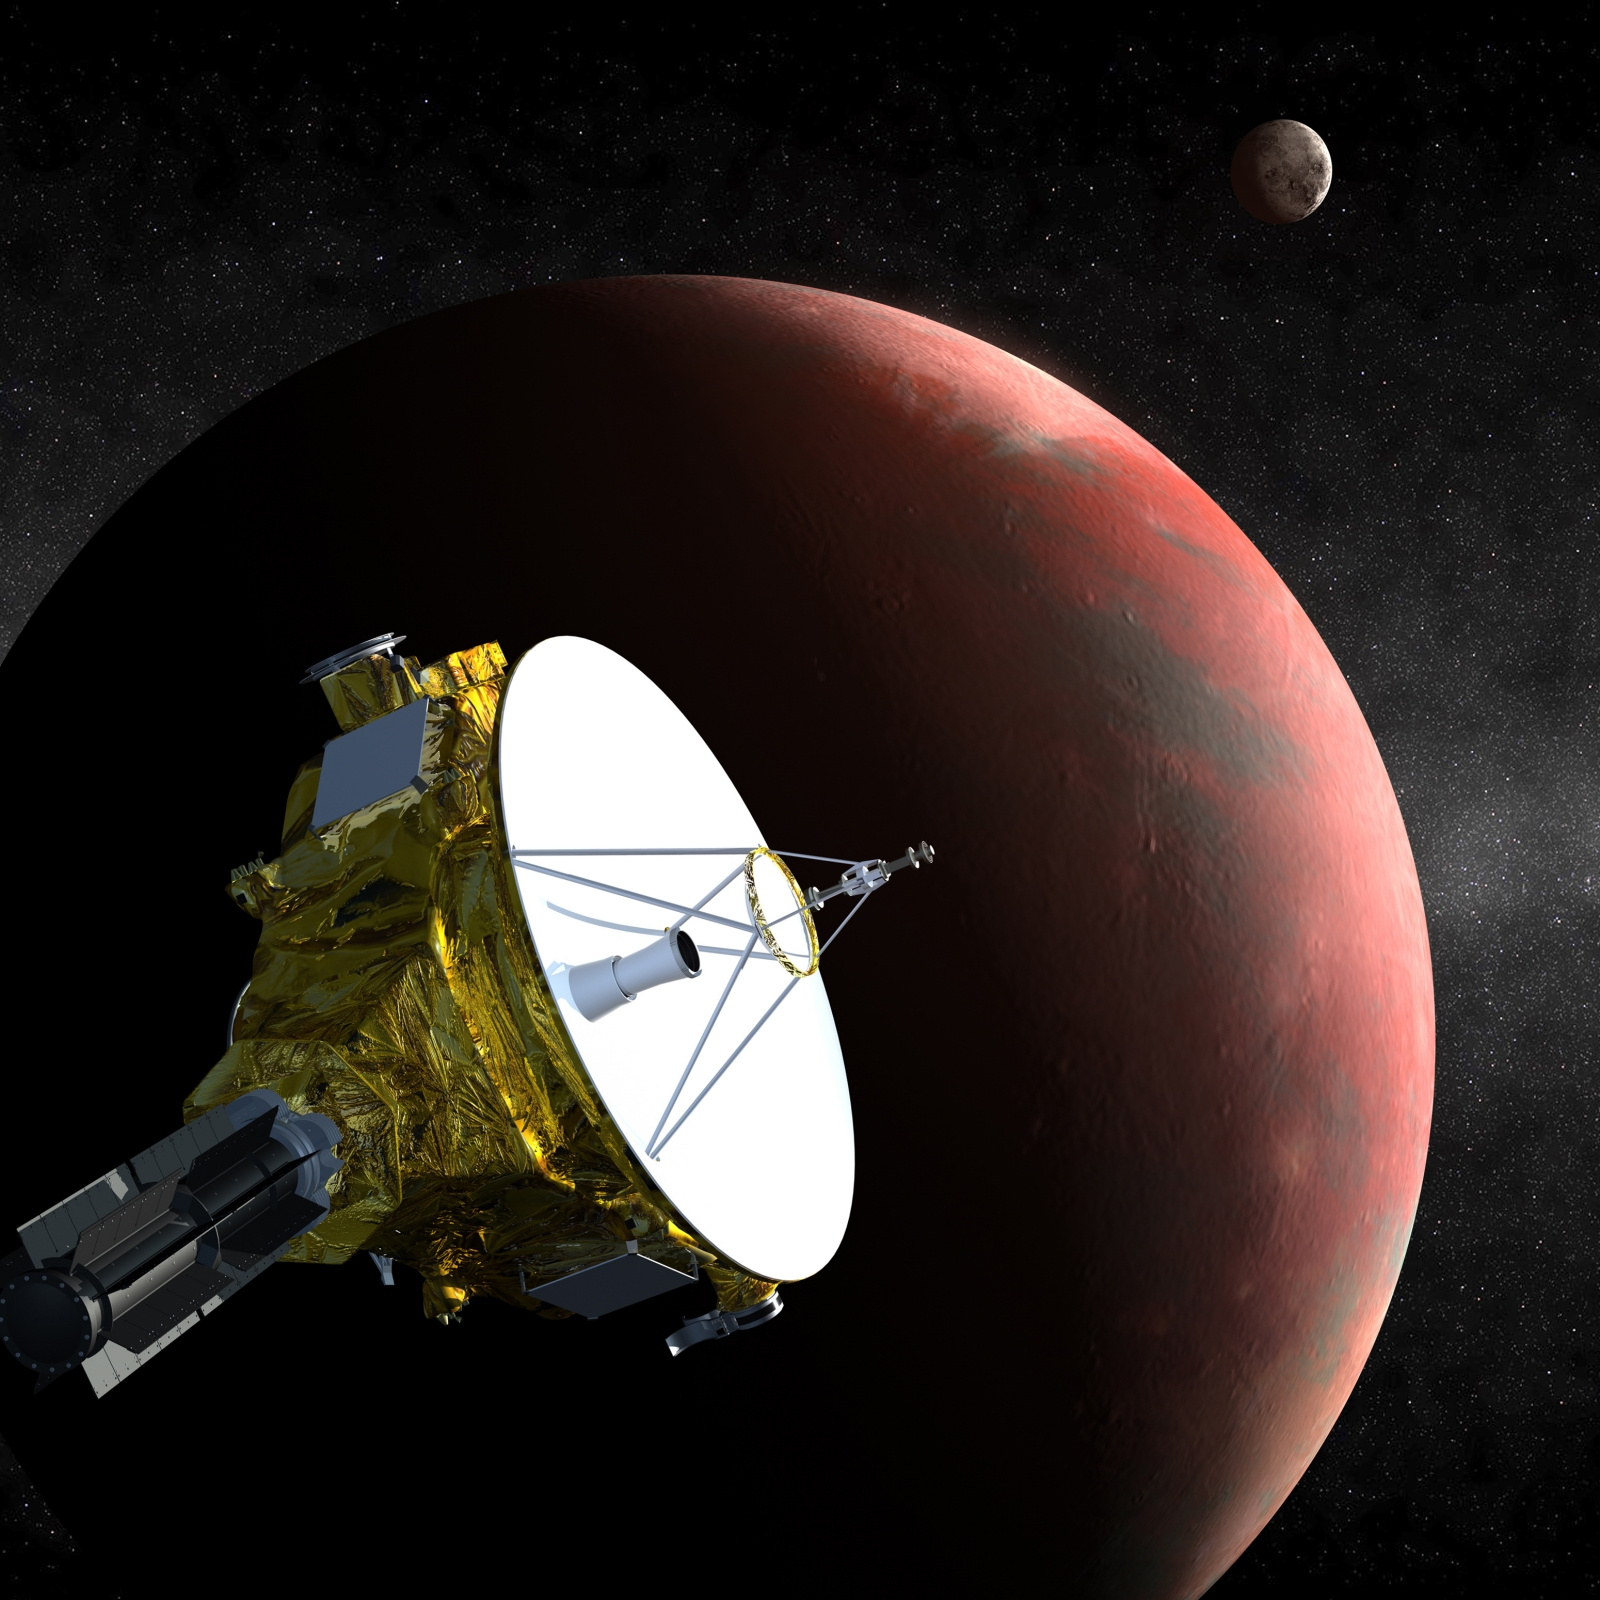 An artists impression of the New Horizons space probe, which will begin photographing Pluto today. (Reuters)